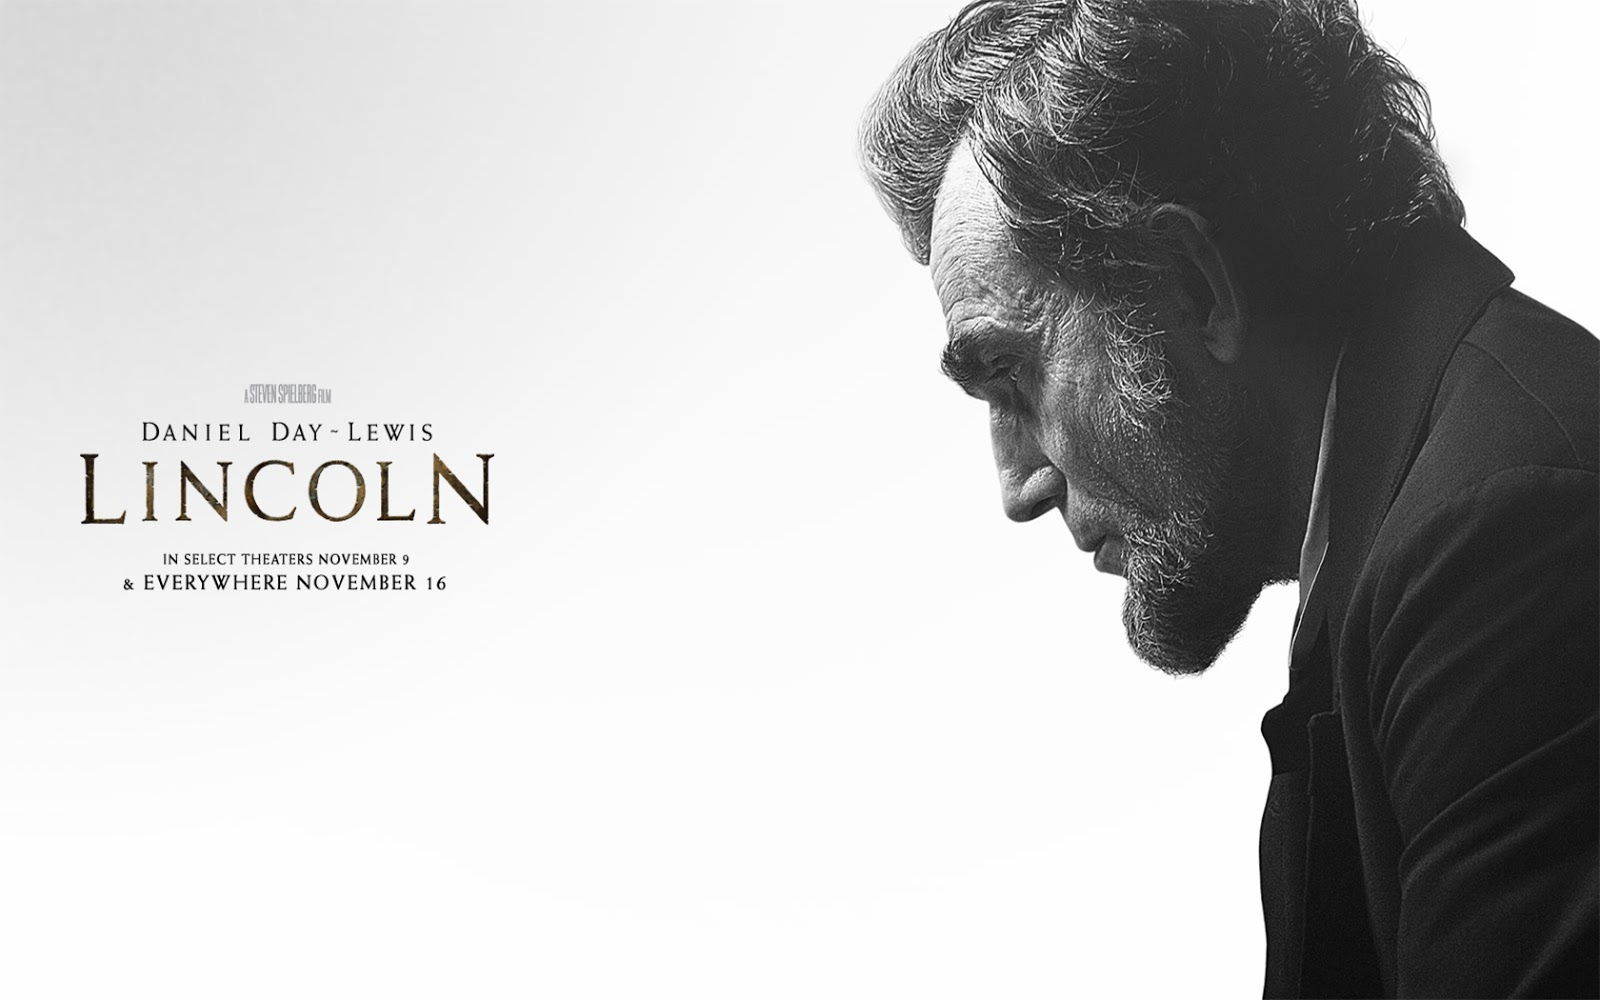 the film lincoln the story of the president abraham lincoln Fagstoff: steven spielberg has brought abraham lincoln, america's 16th  president, and his effort to  what is it about abraham lincoln that makes people  line up to see the film  british political history condensed (video.